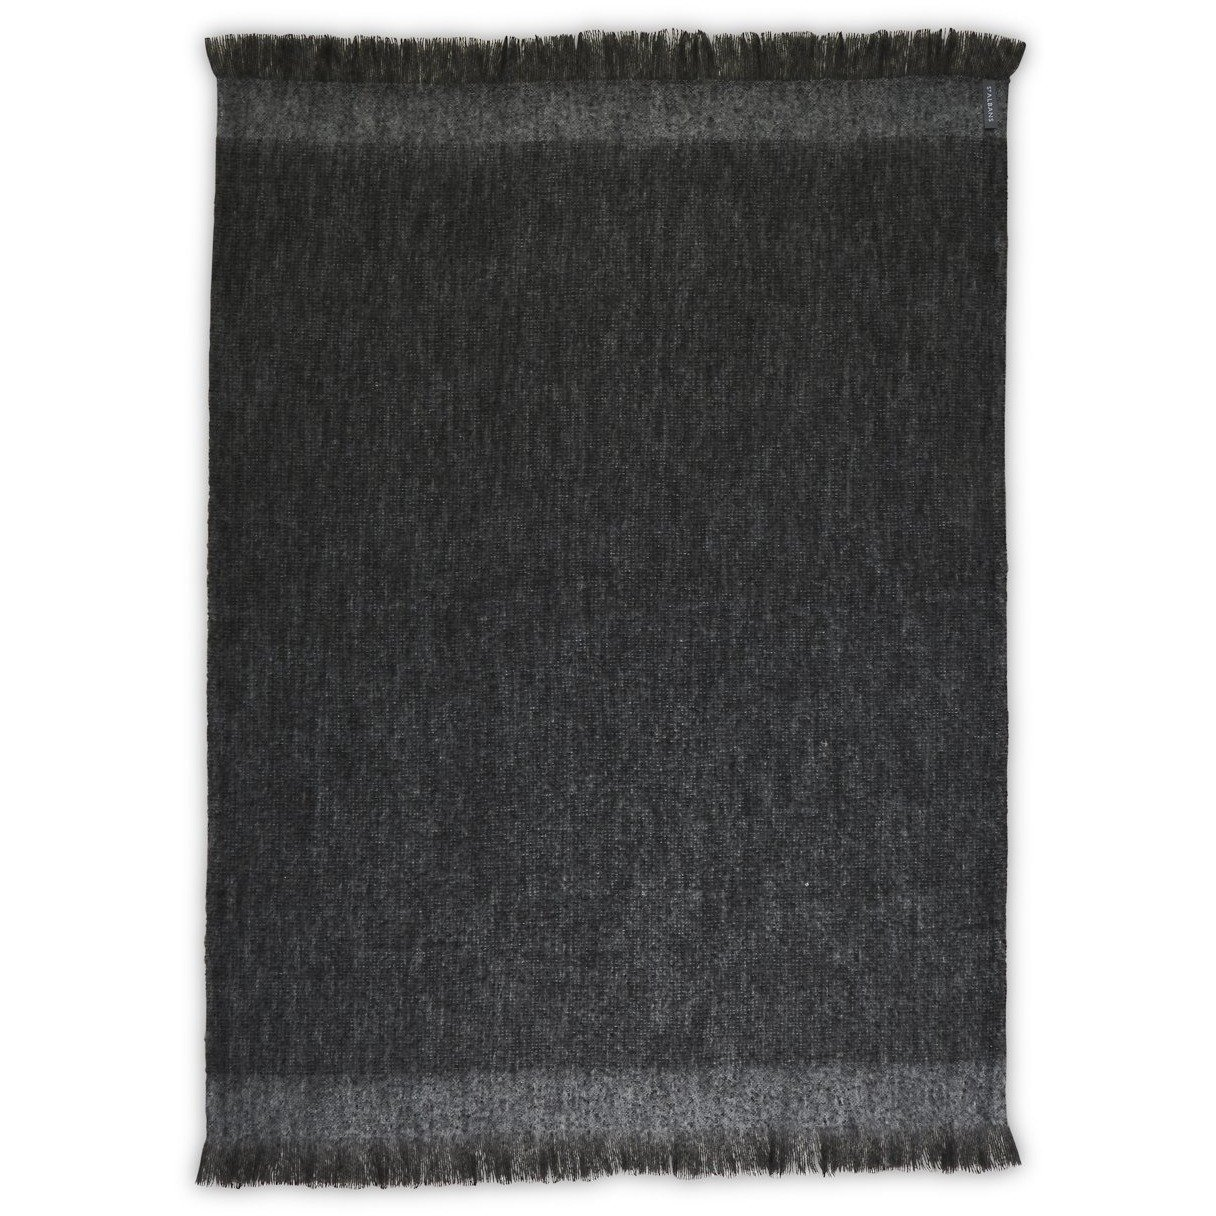 Mohair Woven Throw in Maggie